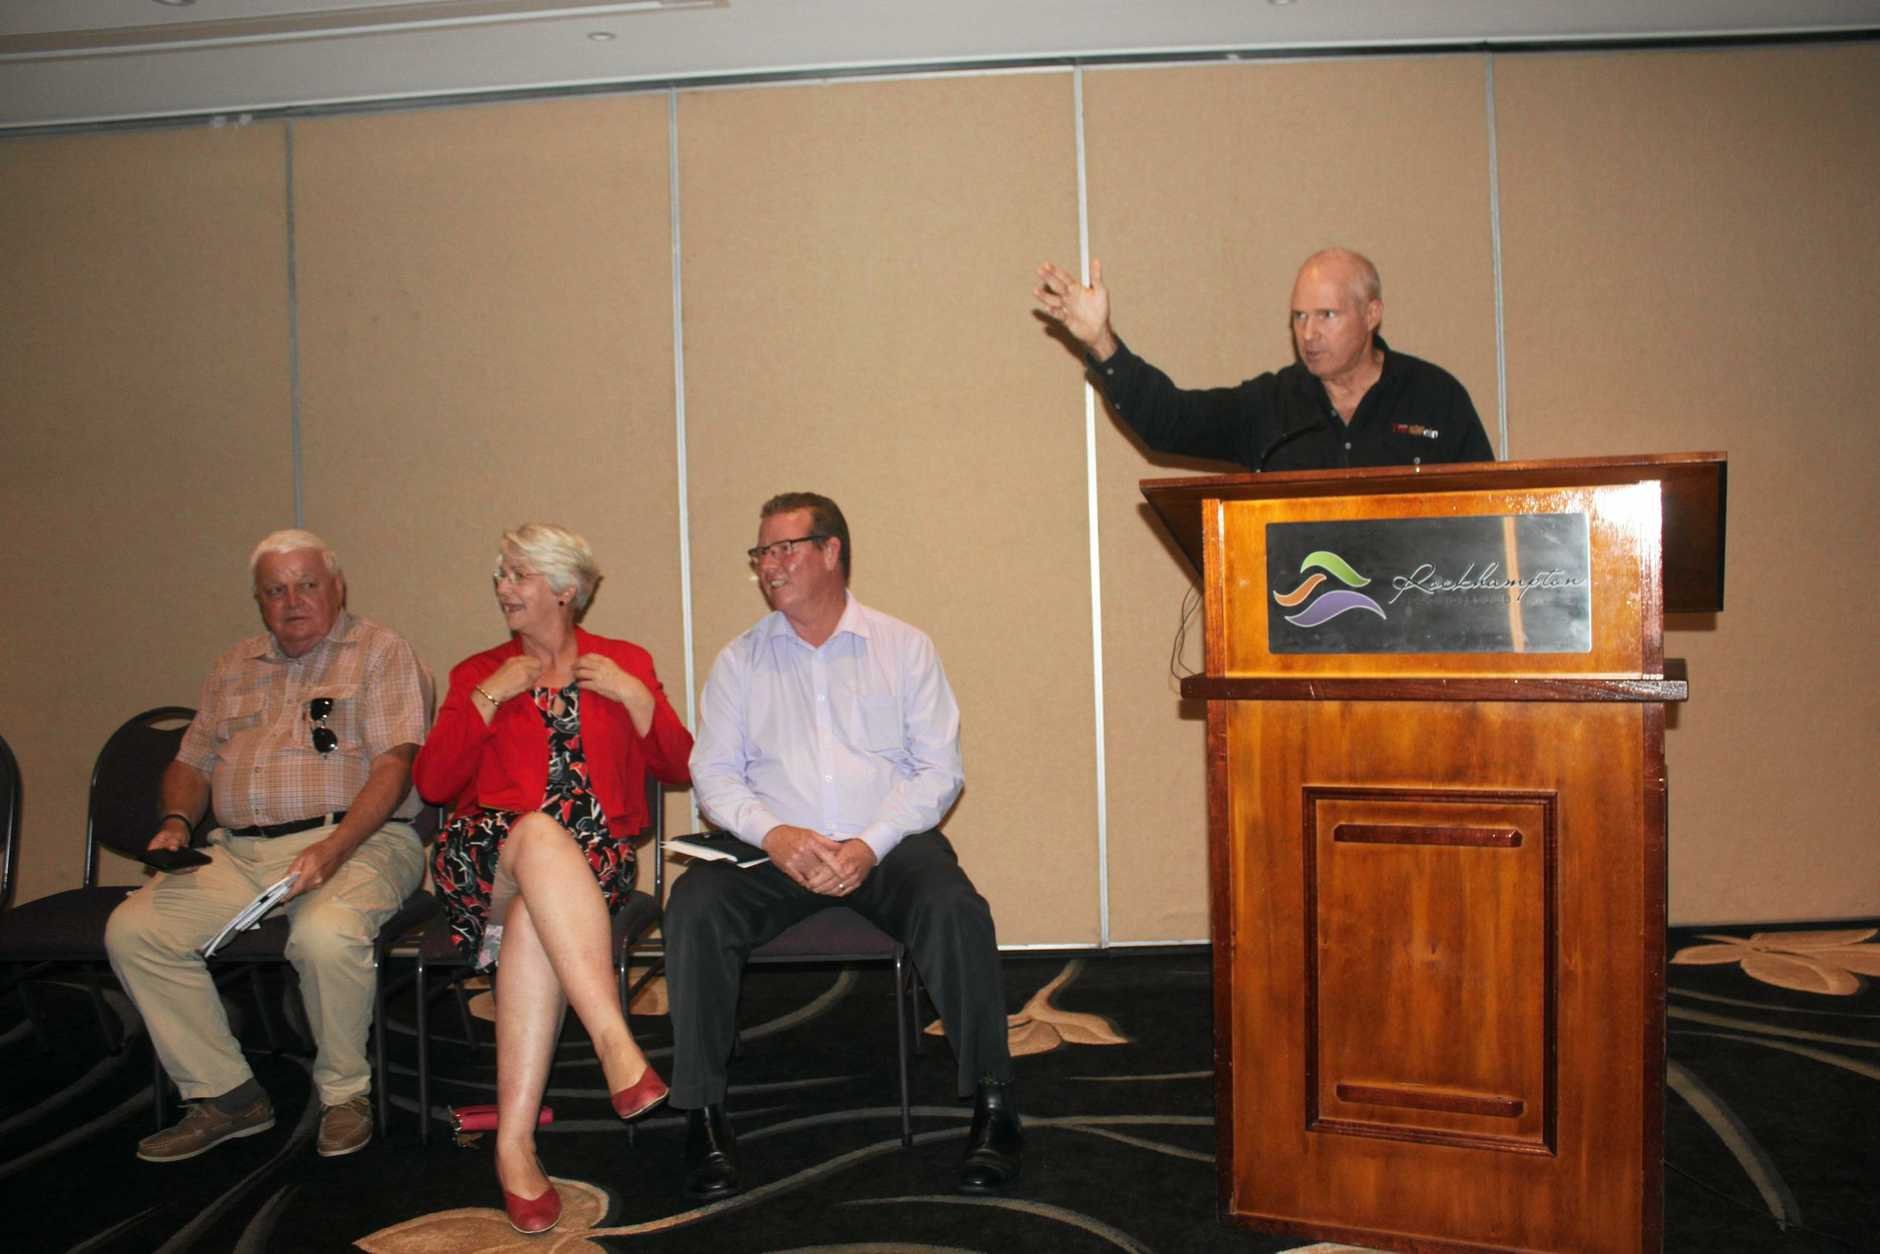 Frazer Pearce moderating the public meeting.